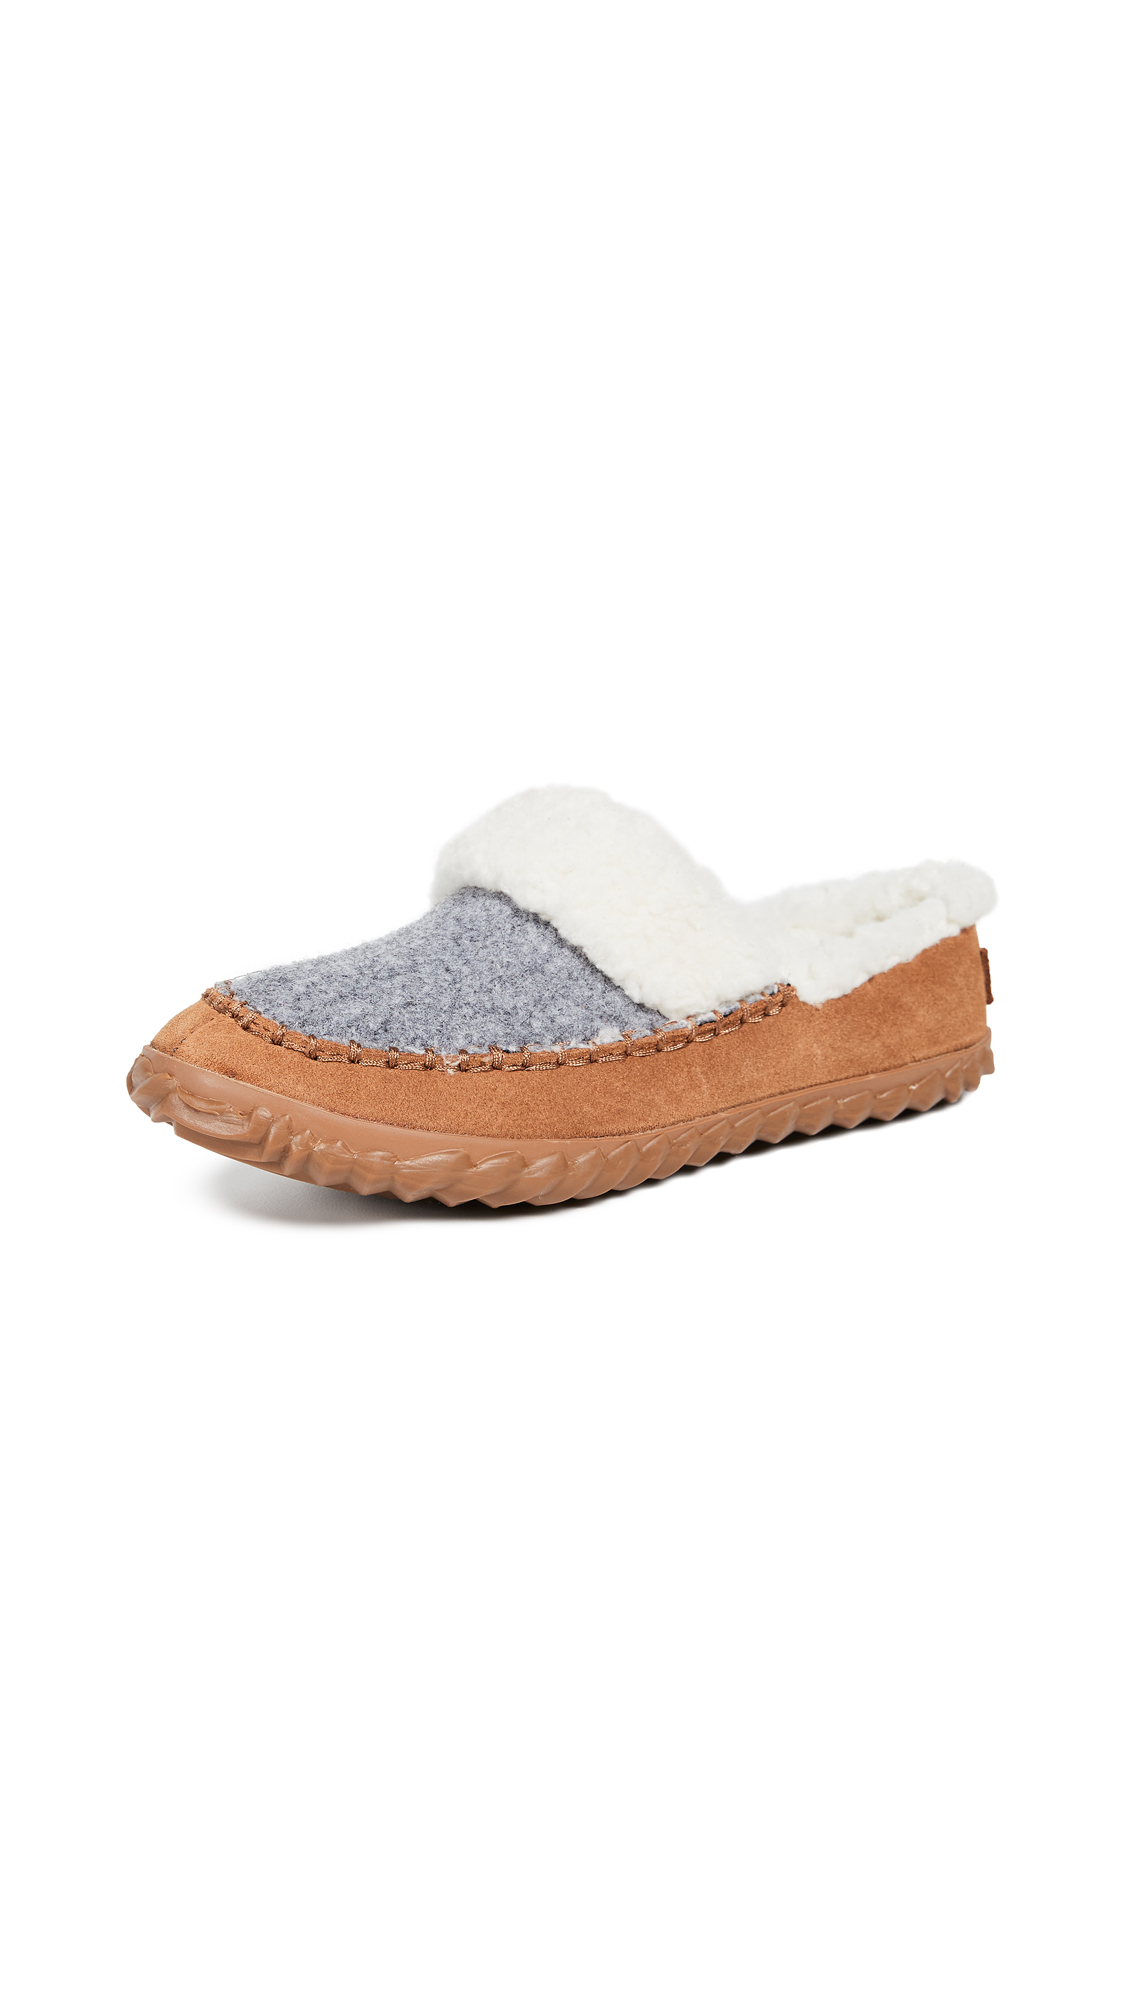 Sorel Out N About Slide Slip On Slippers - Light Grey/Natural